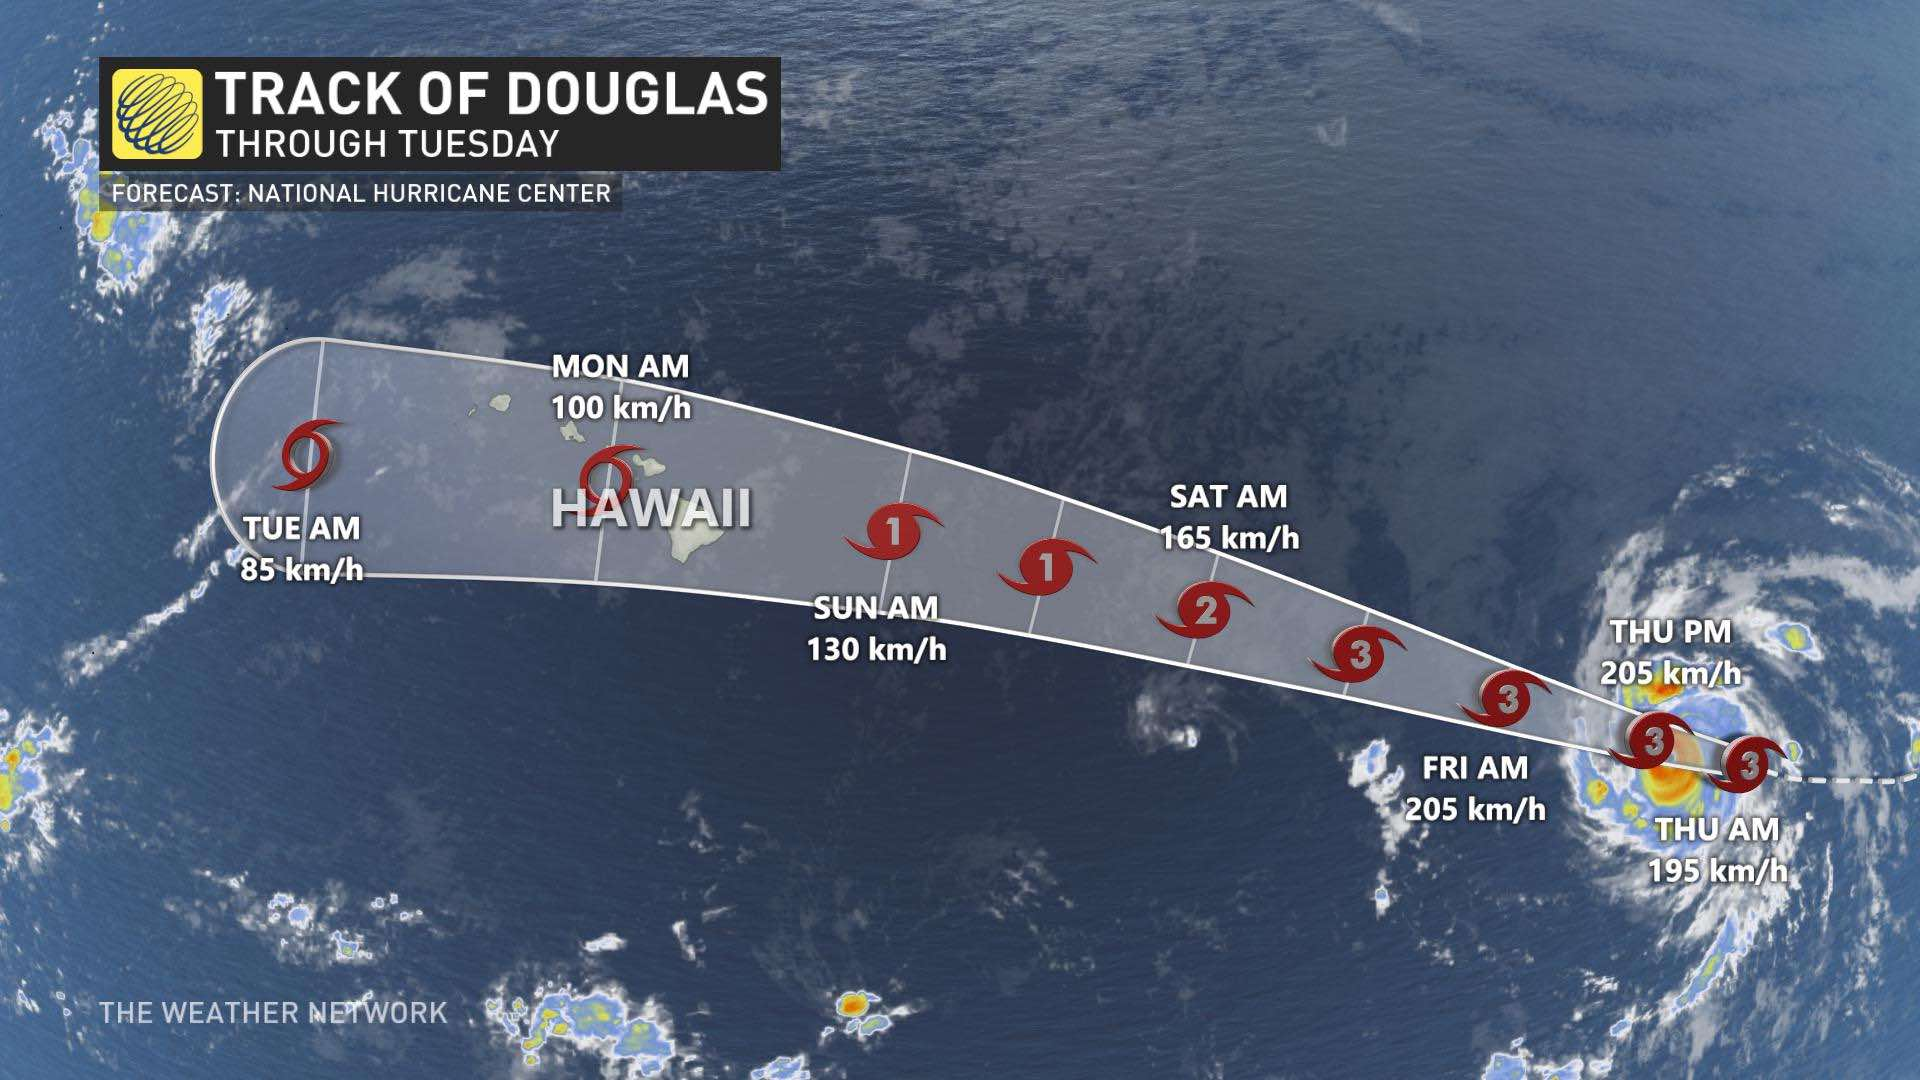 Maui hit by heavy rain, strong winds as Hurricane Douglas approaches